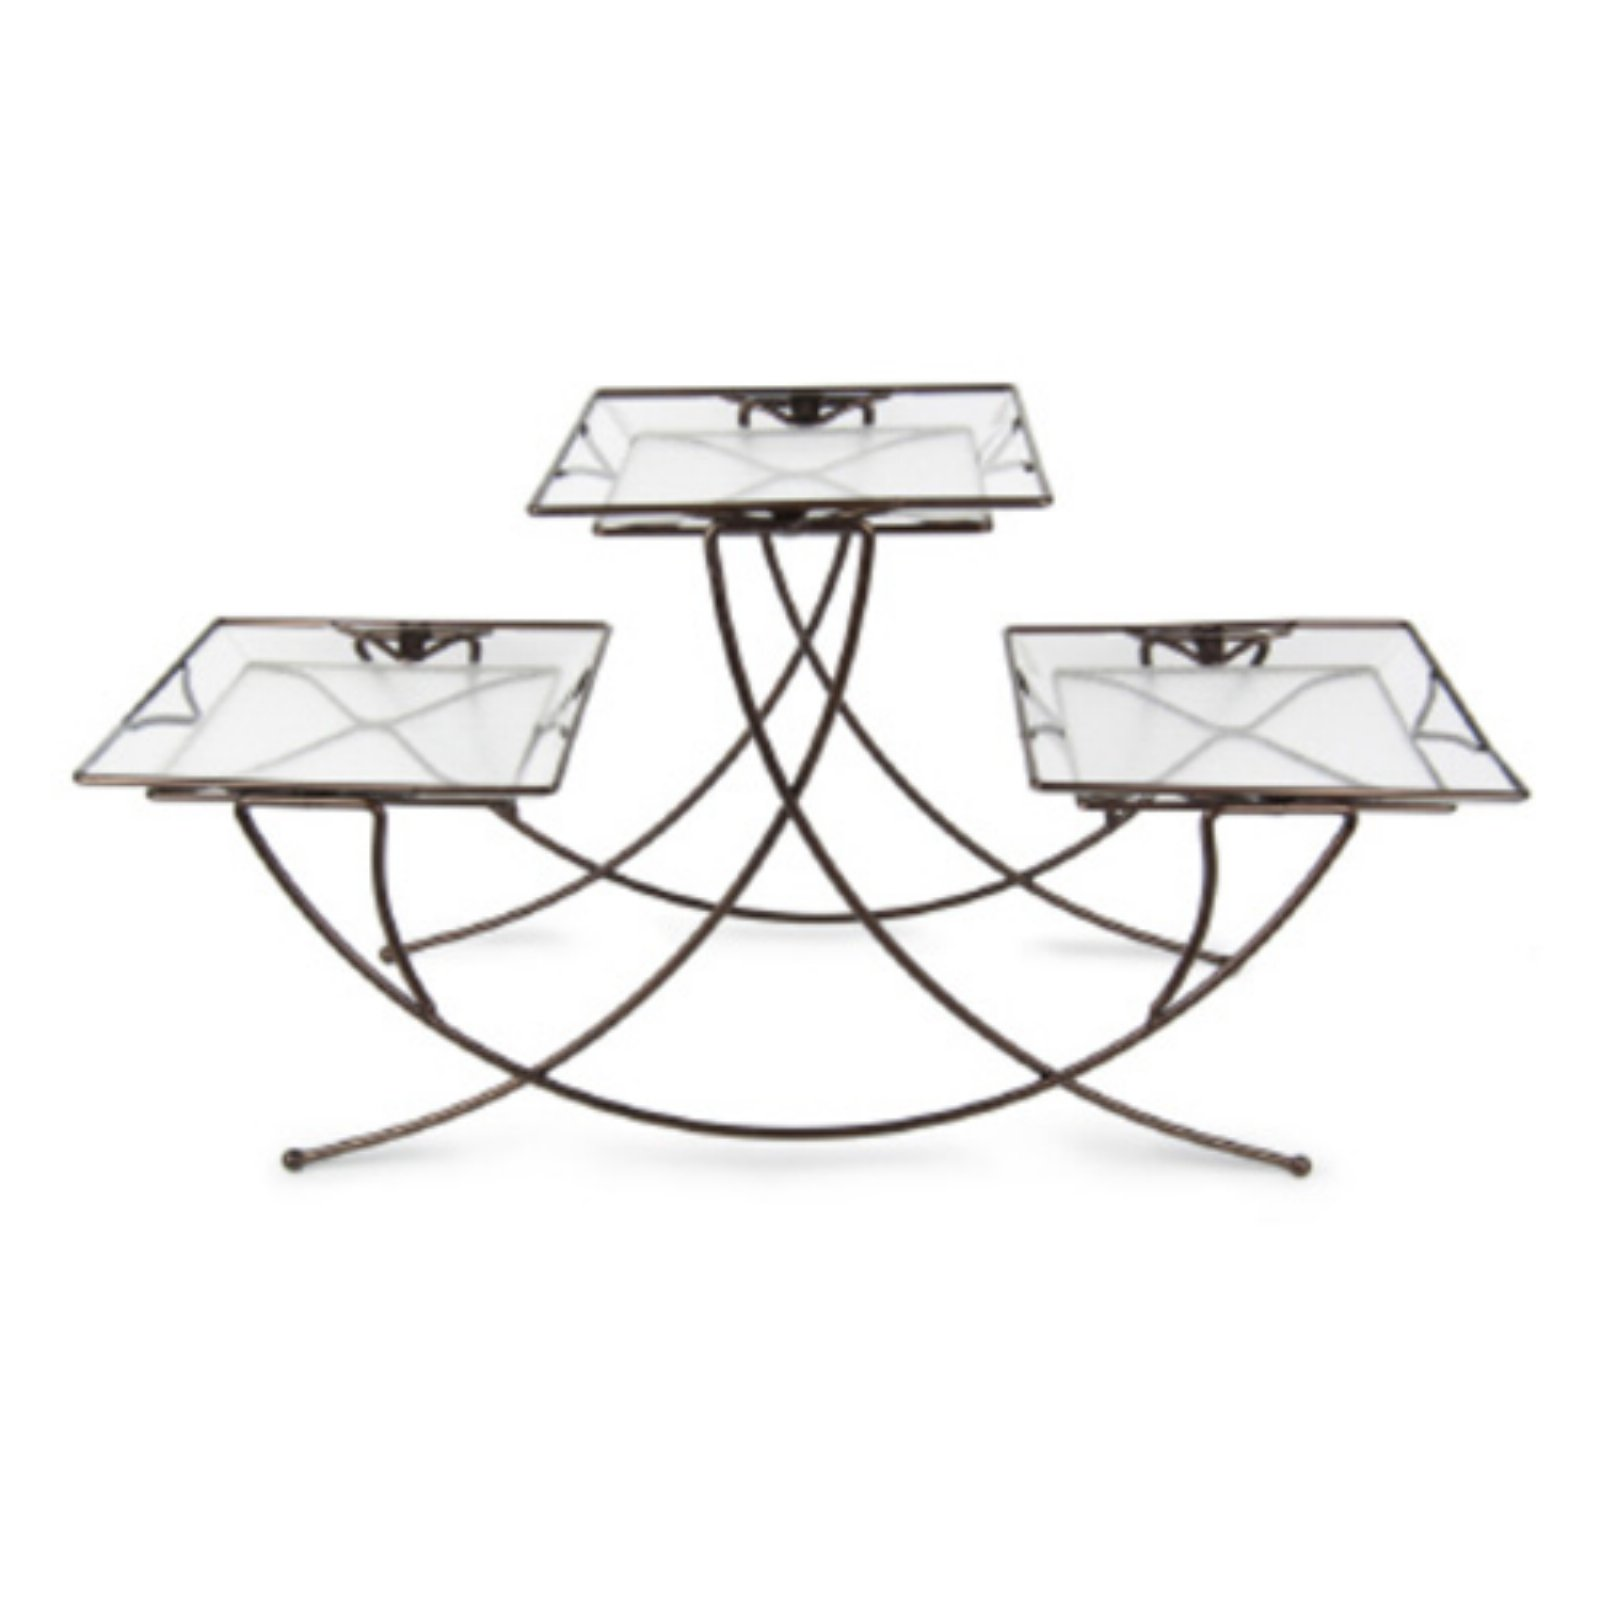 Plastec Triple Square Plant Stand by Overstock